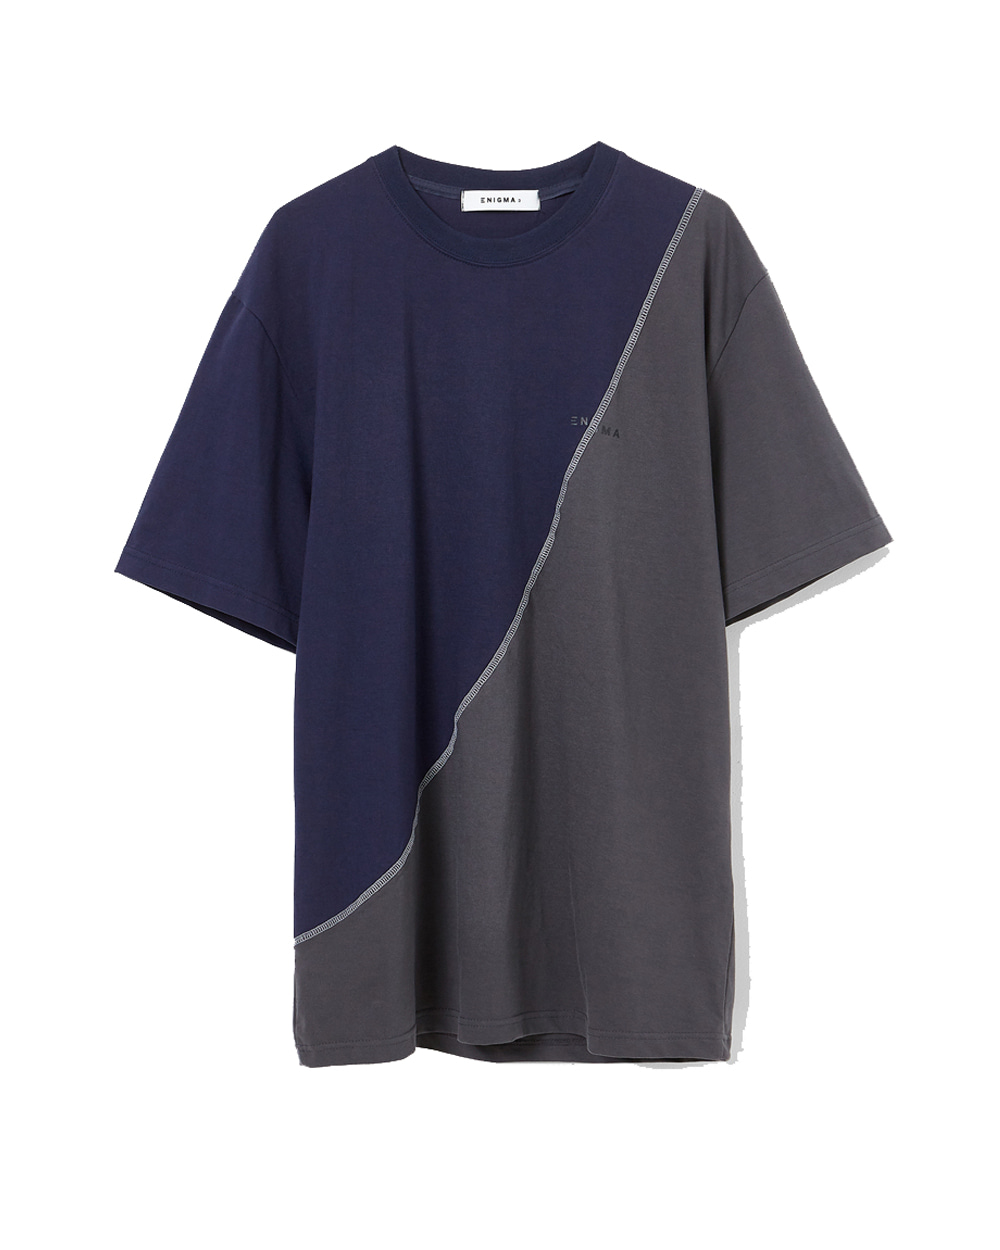 이니그마 Rework T-Shirt (Navy/Charcoal)